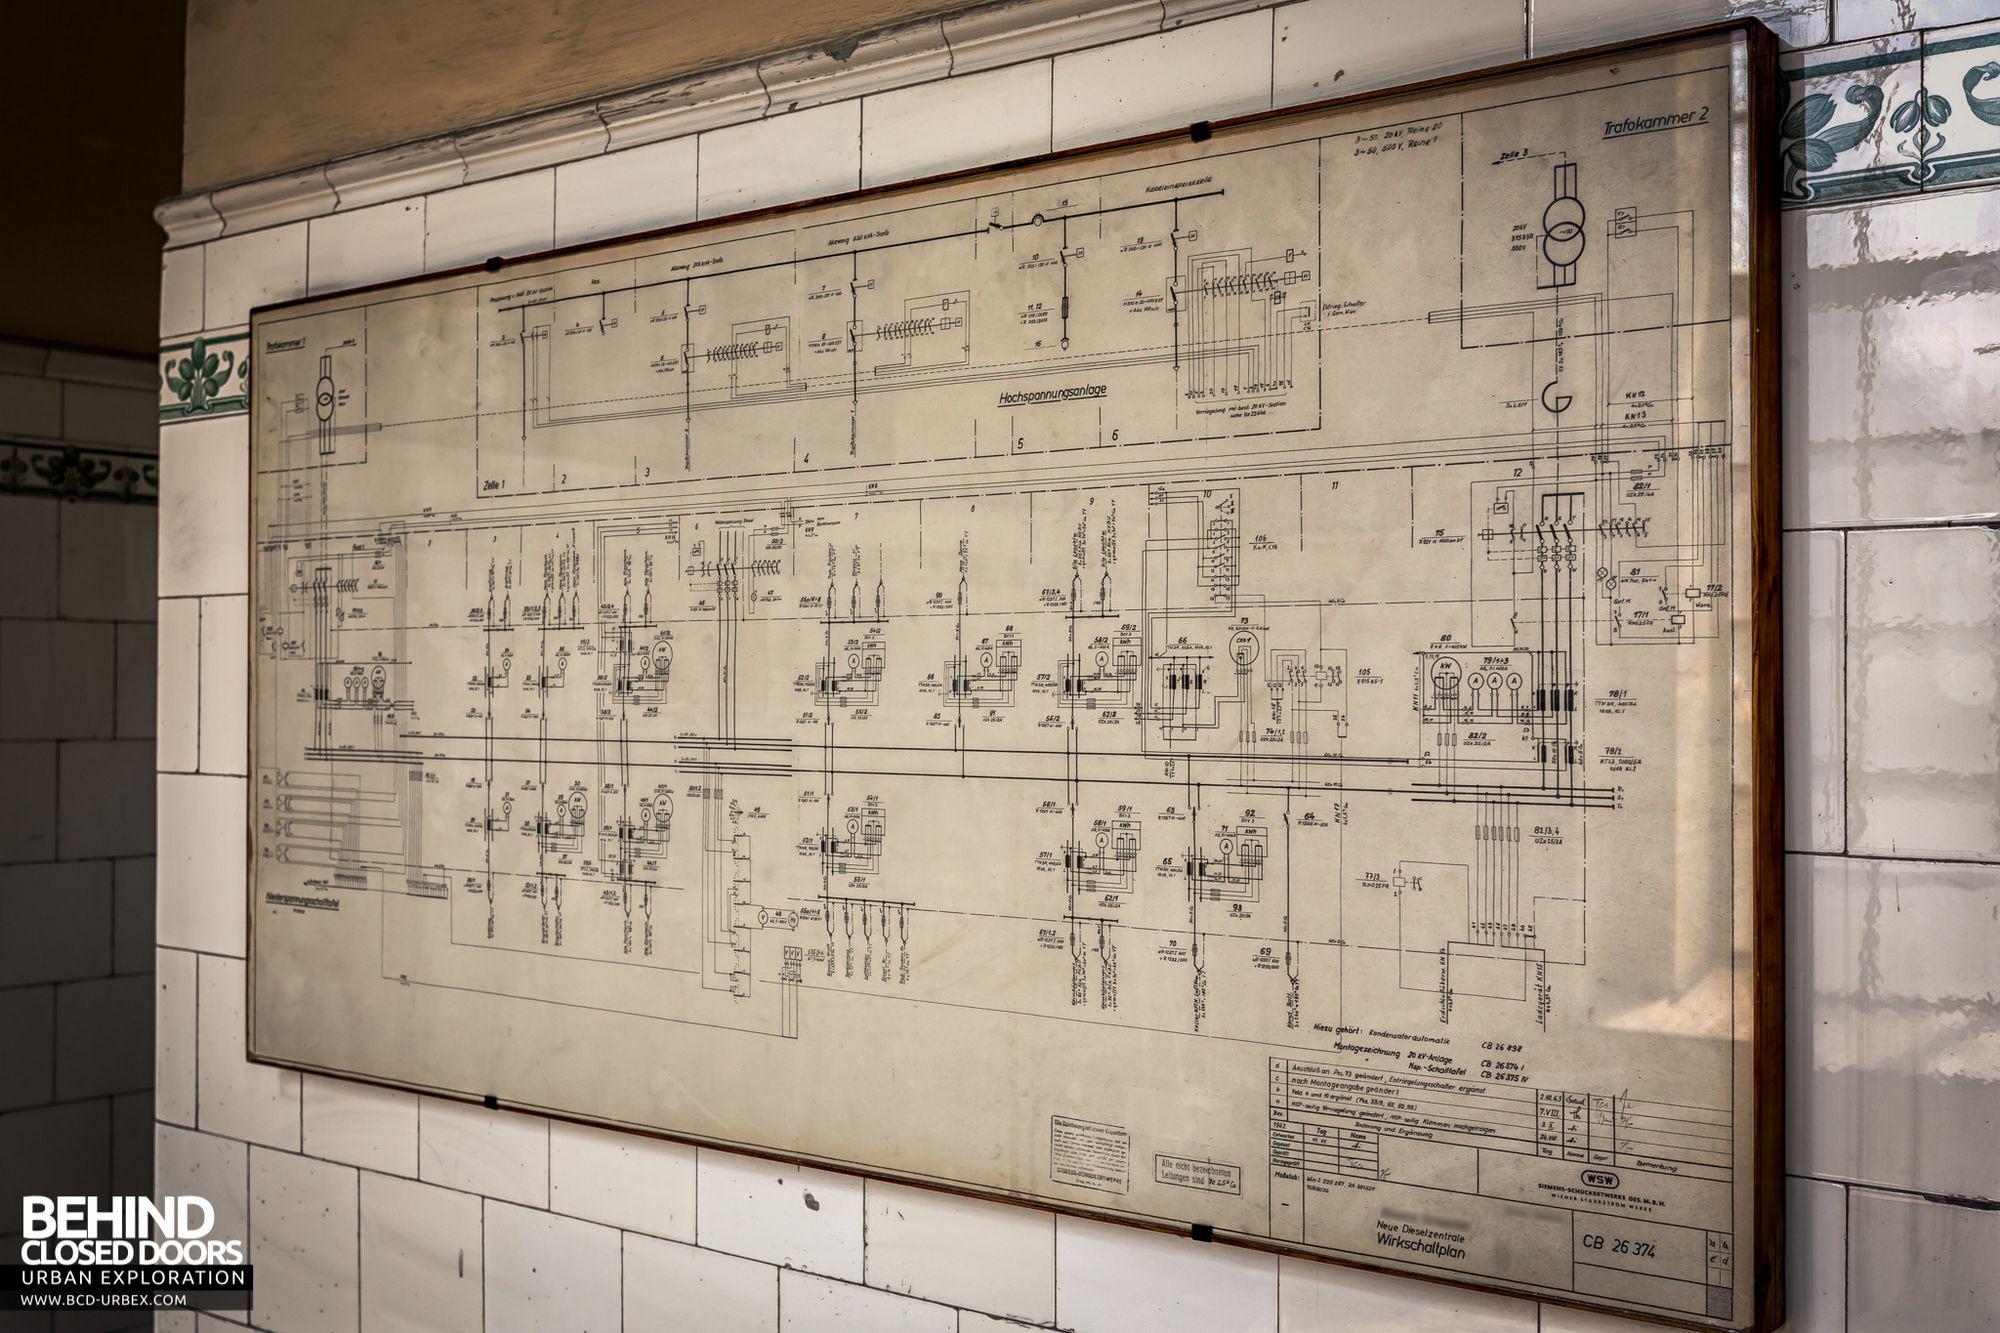 Diesel Centrale Austria Urbex Behind Closed Doors Urban European Industrial Wiring Diagrams Control Panel Diagram